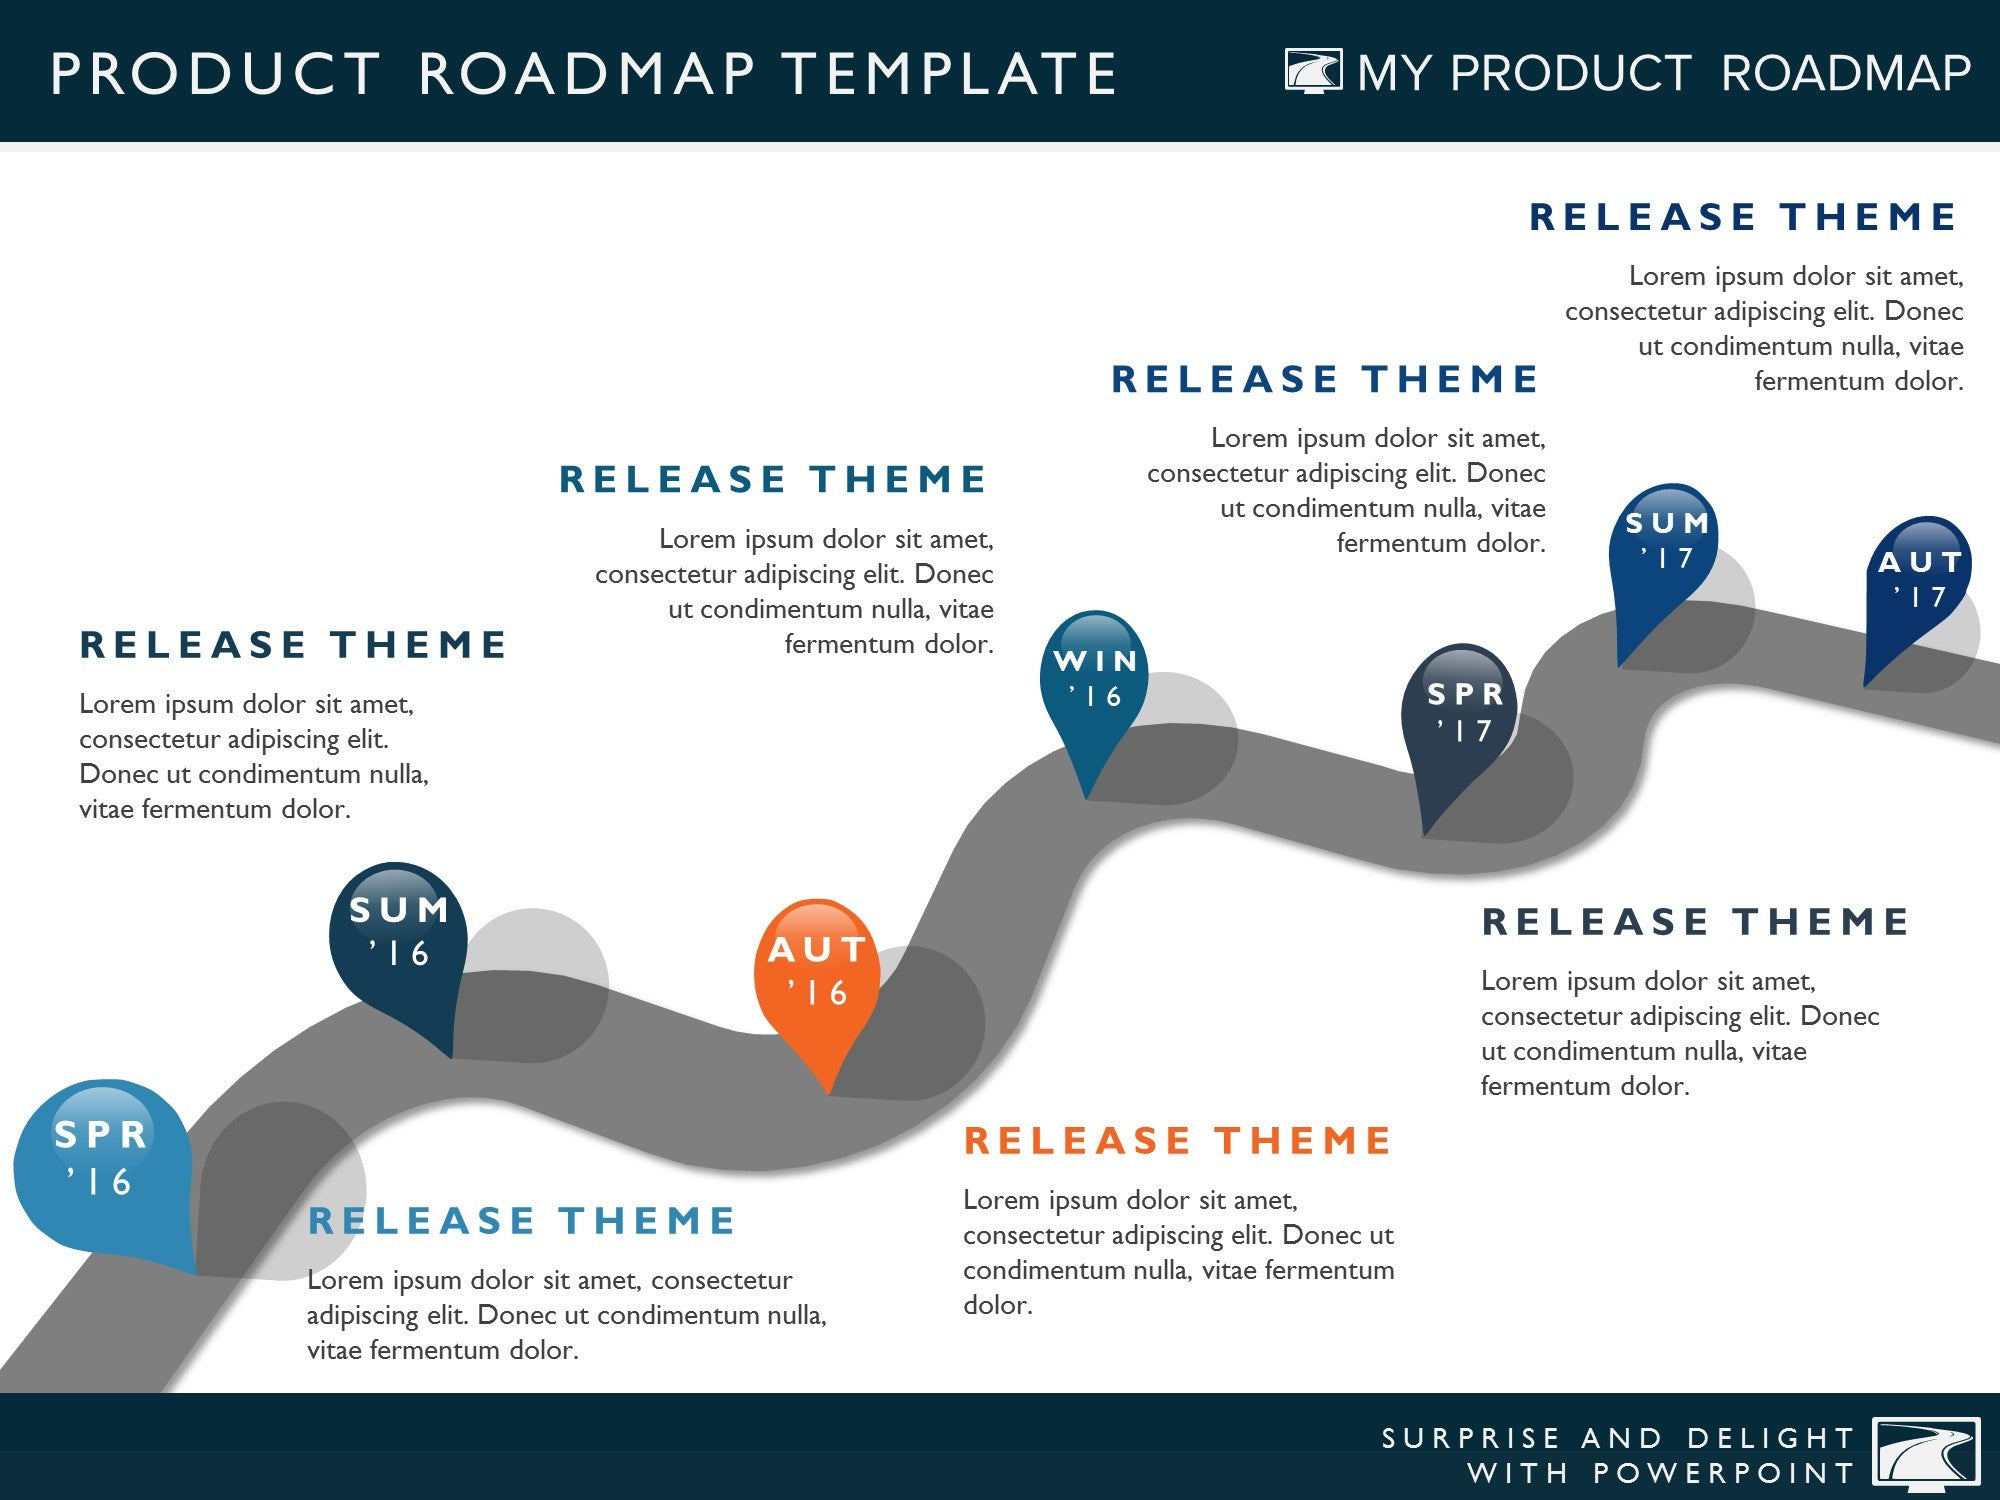 Seven phase it timeline roadmapping powerpoint template my product strategy development cycle planning timeline templates stages software management tools ppt manager marketing roadmap template toneelgroepblik